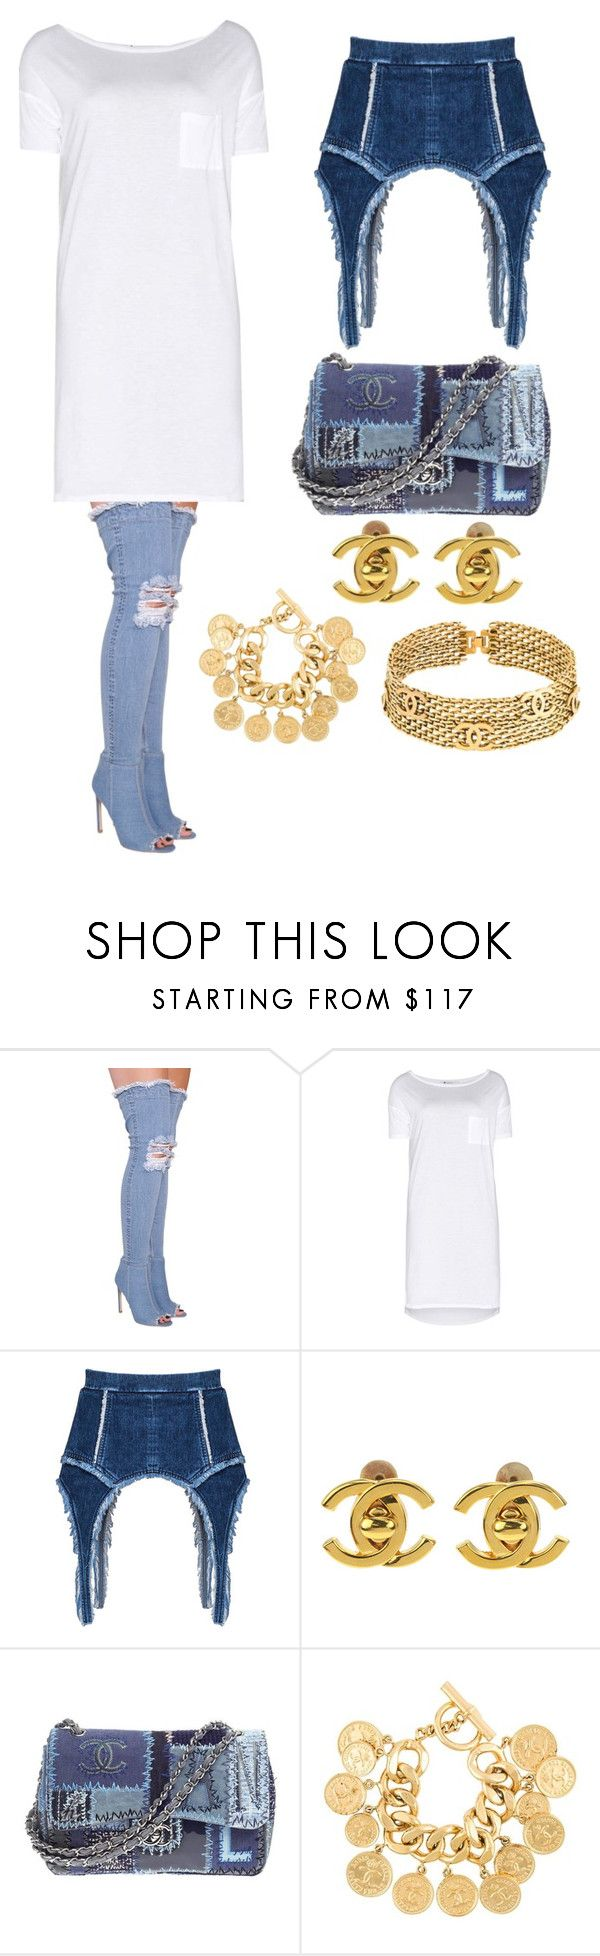 """Oops I did it again"" by walkeralexzandreia ❤ liked on Polyvore featuring T By Alexander Wang and Chanel"